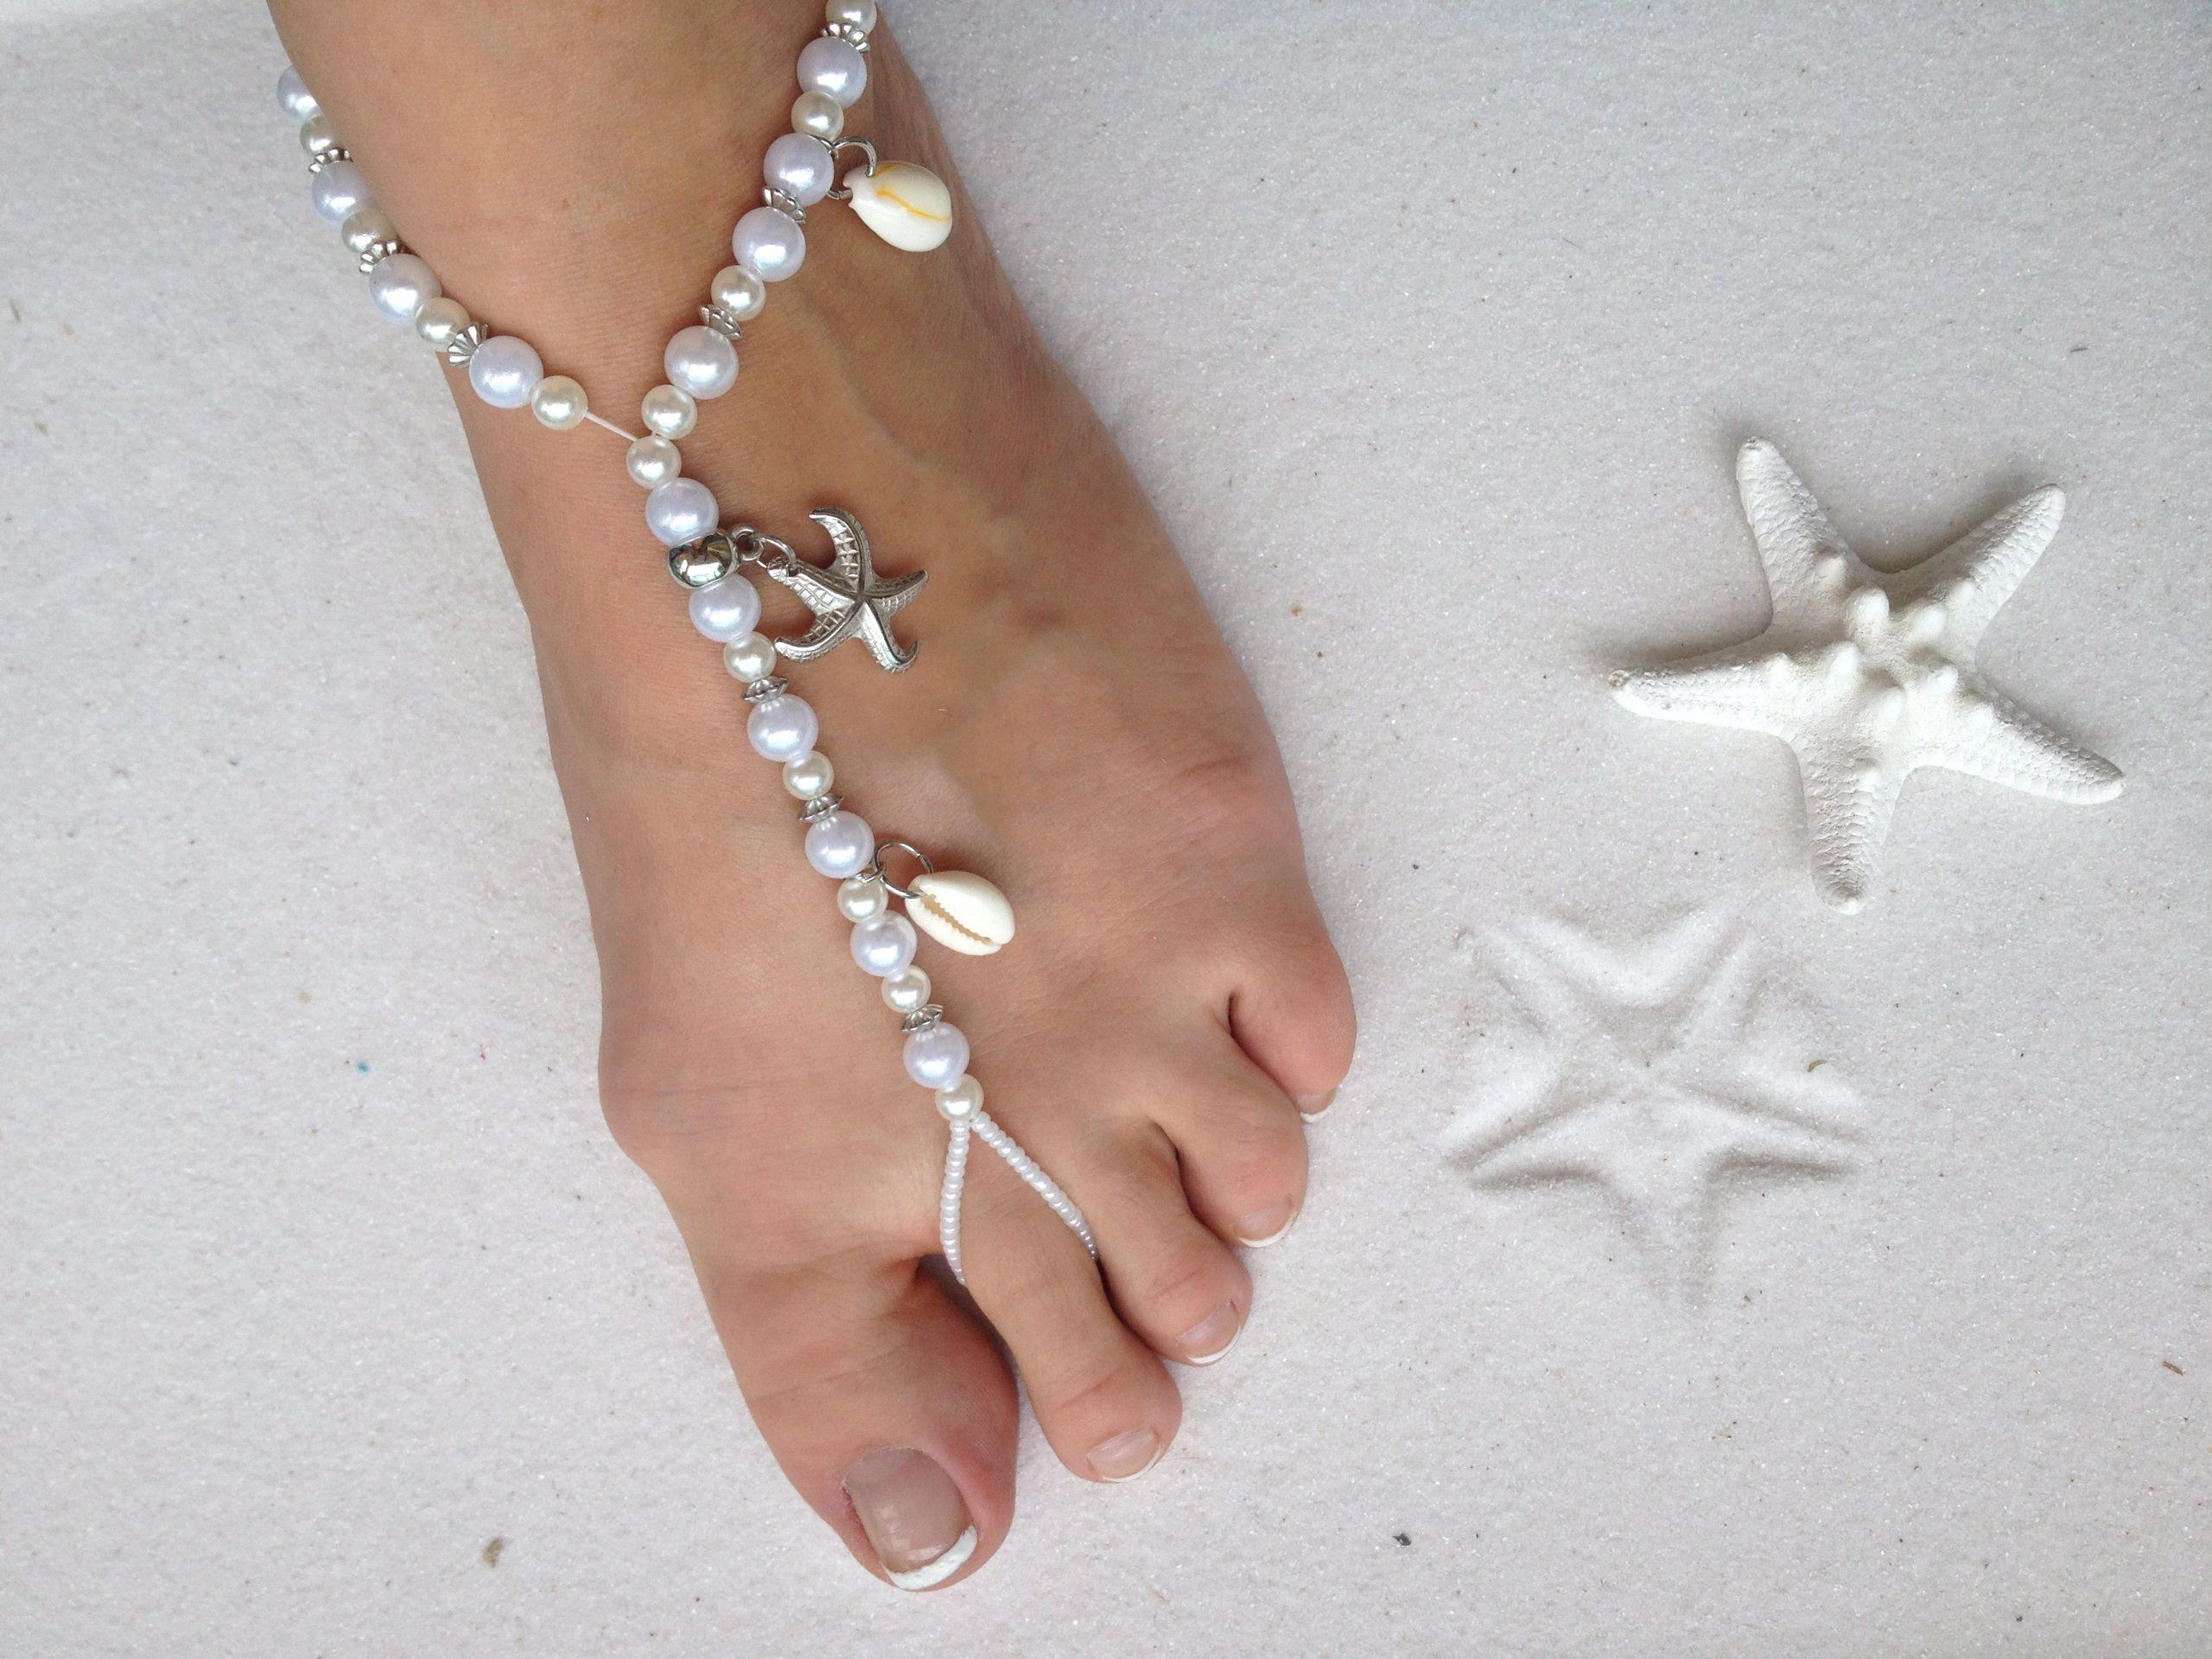 pin forever sandals palace wedding bracelet for beaded soles boho gift anklet by gold barefoot woman bridal style jewelry